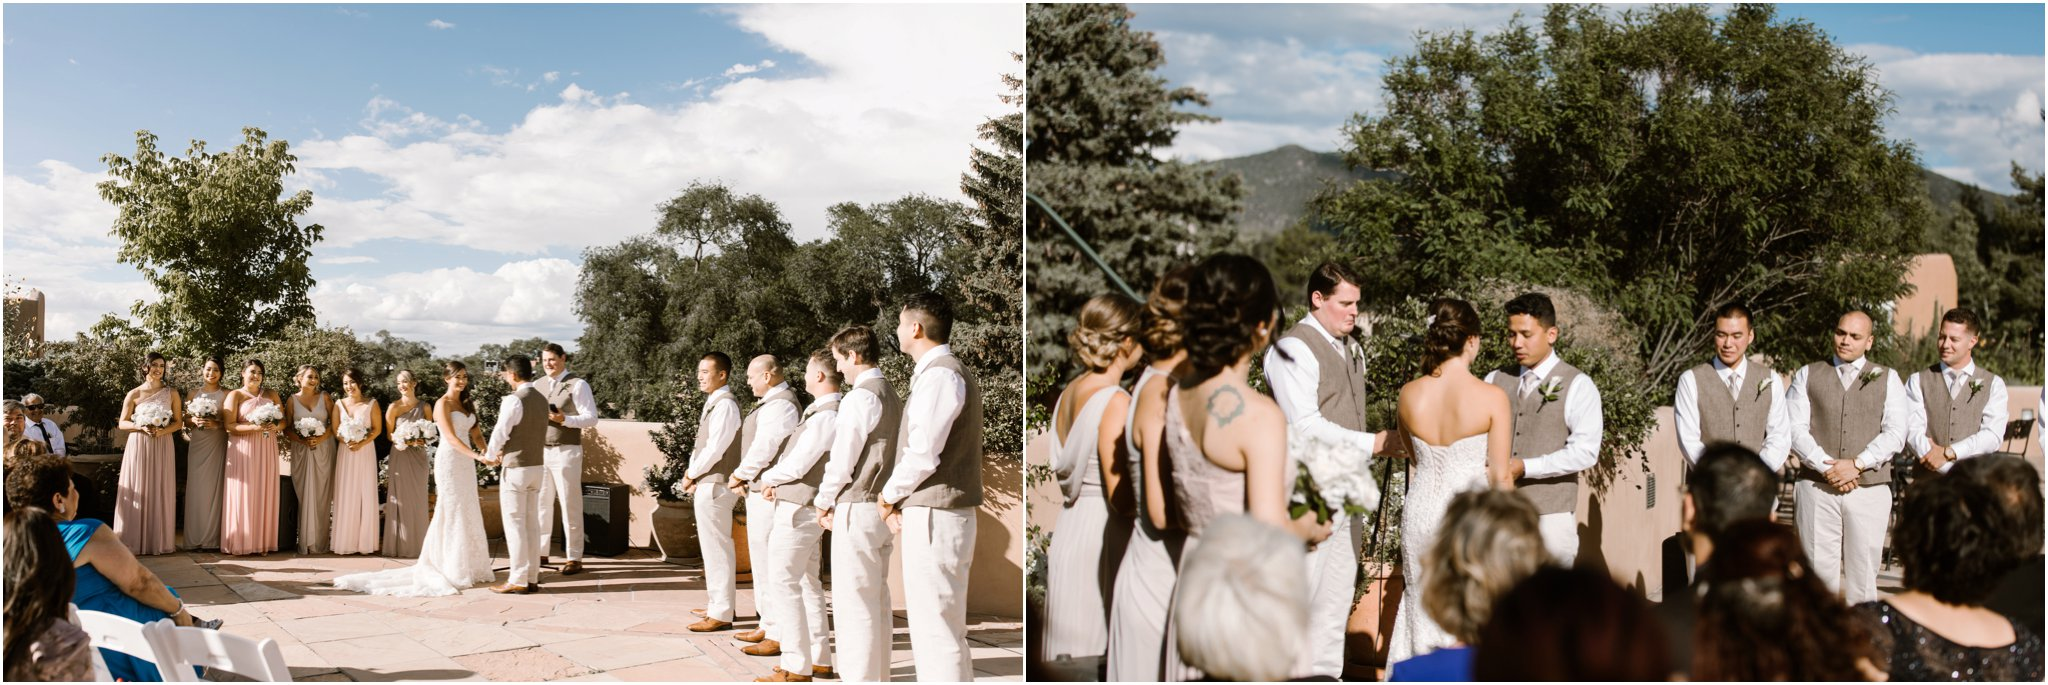 0028La Fonda Weddings Blue Rose Photography Studios